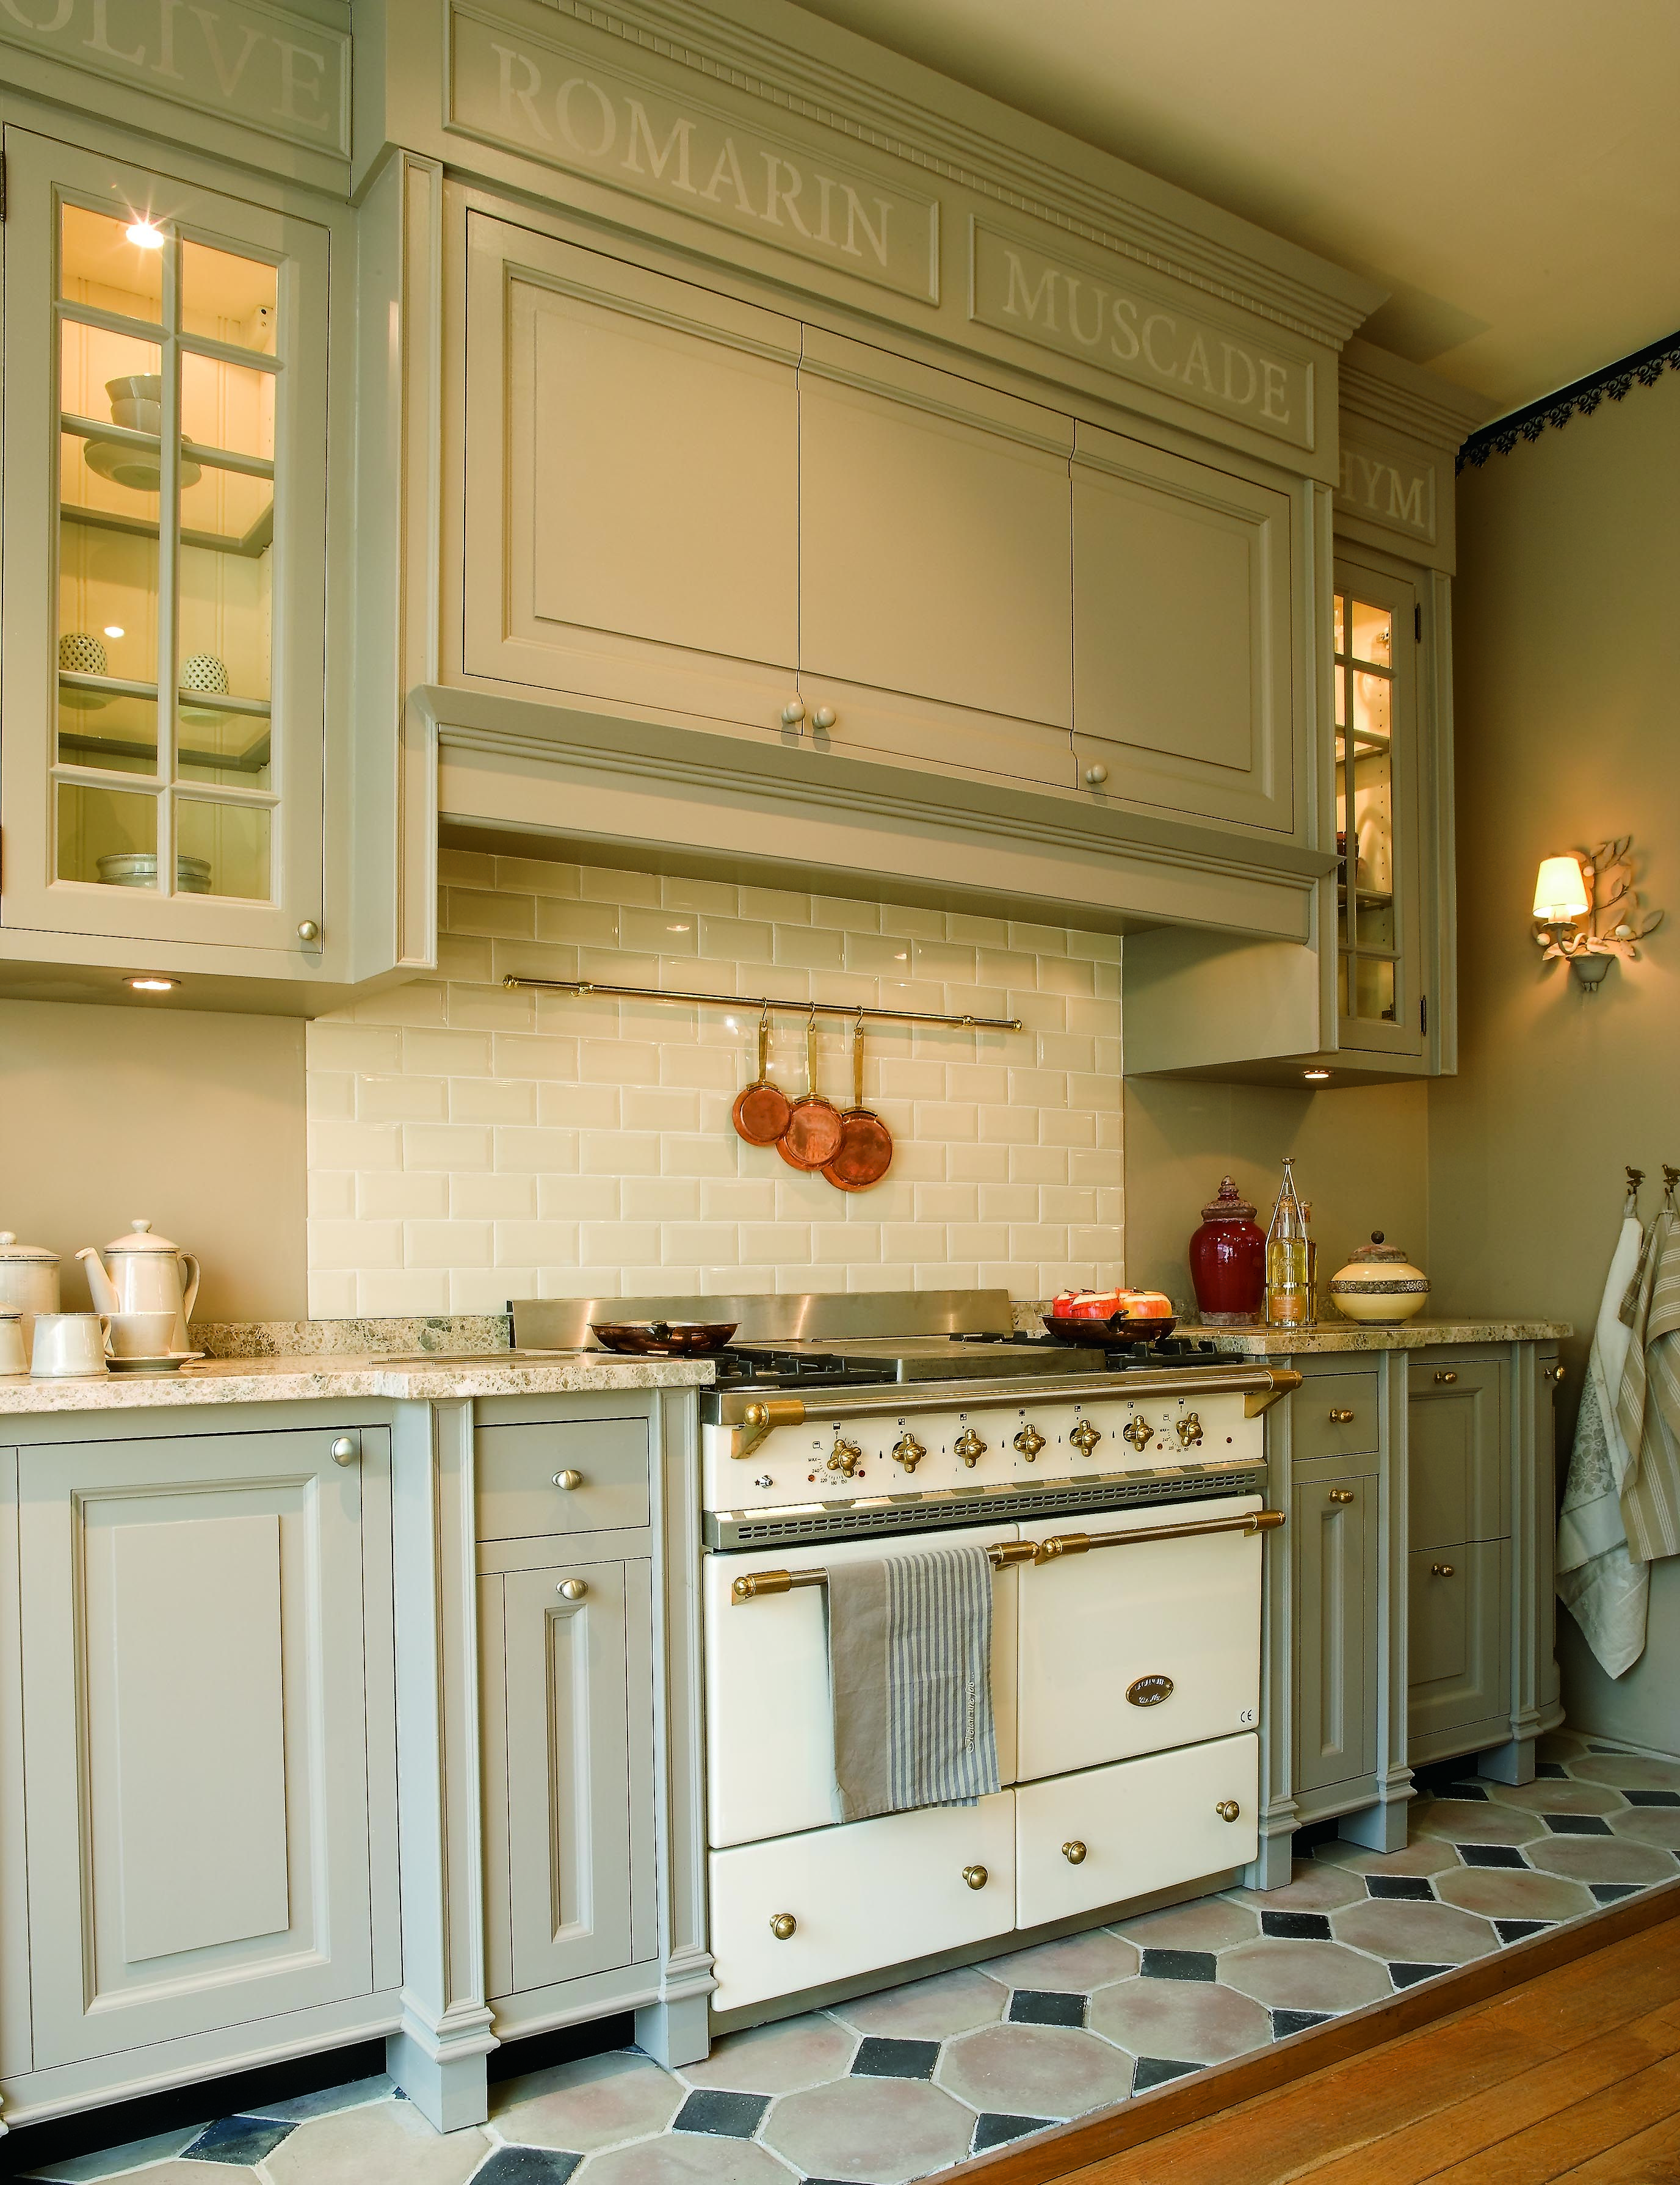 40 lacanche cluny in white brass with a built in range hood lacanche ranges pinterest. Black Bedroom Furniture Sets. Home Design Ideas